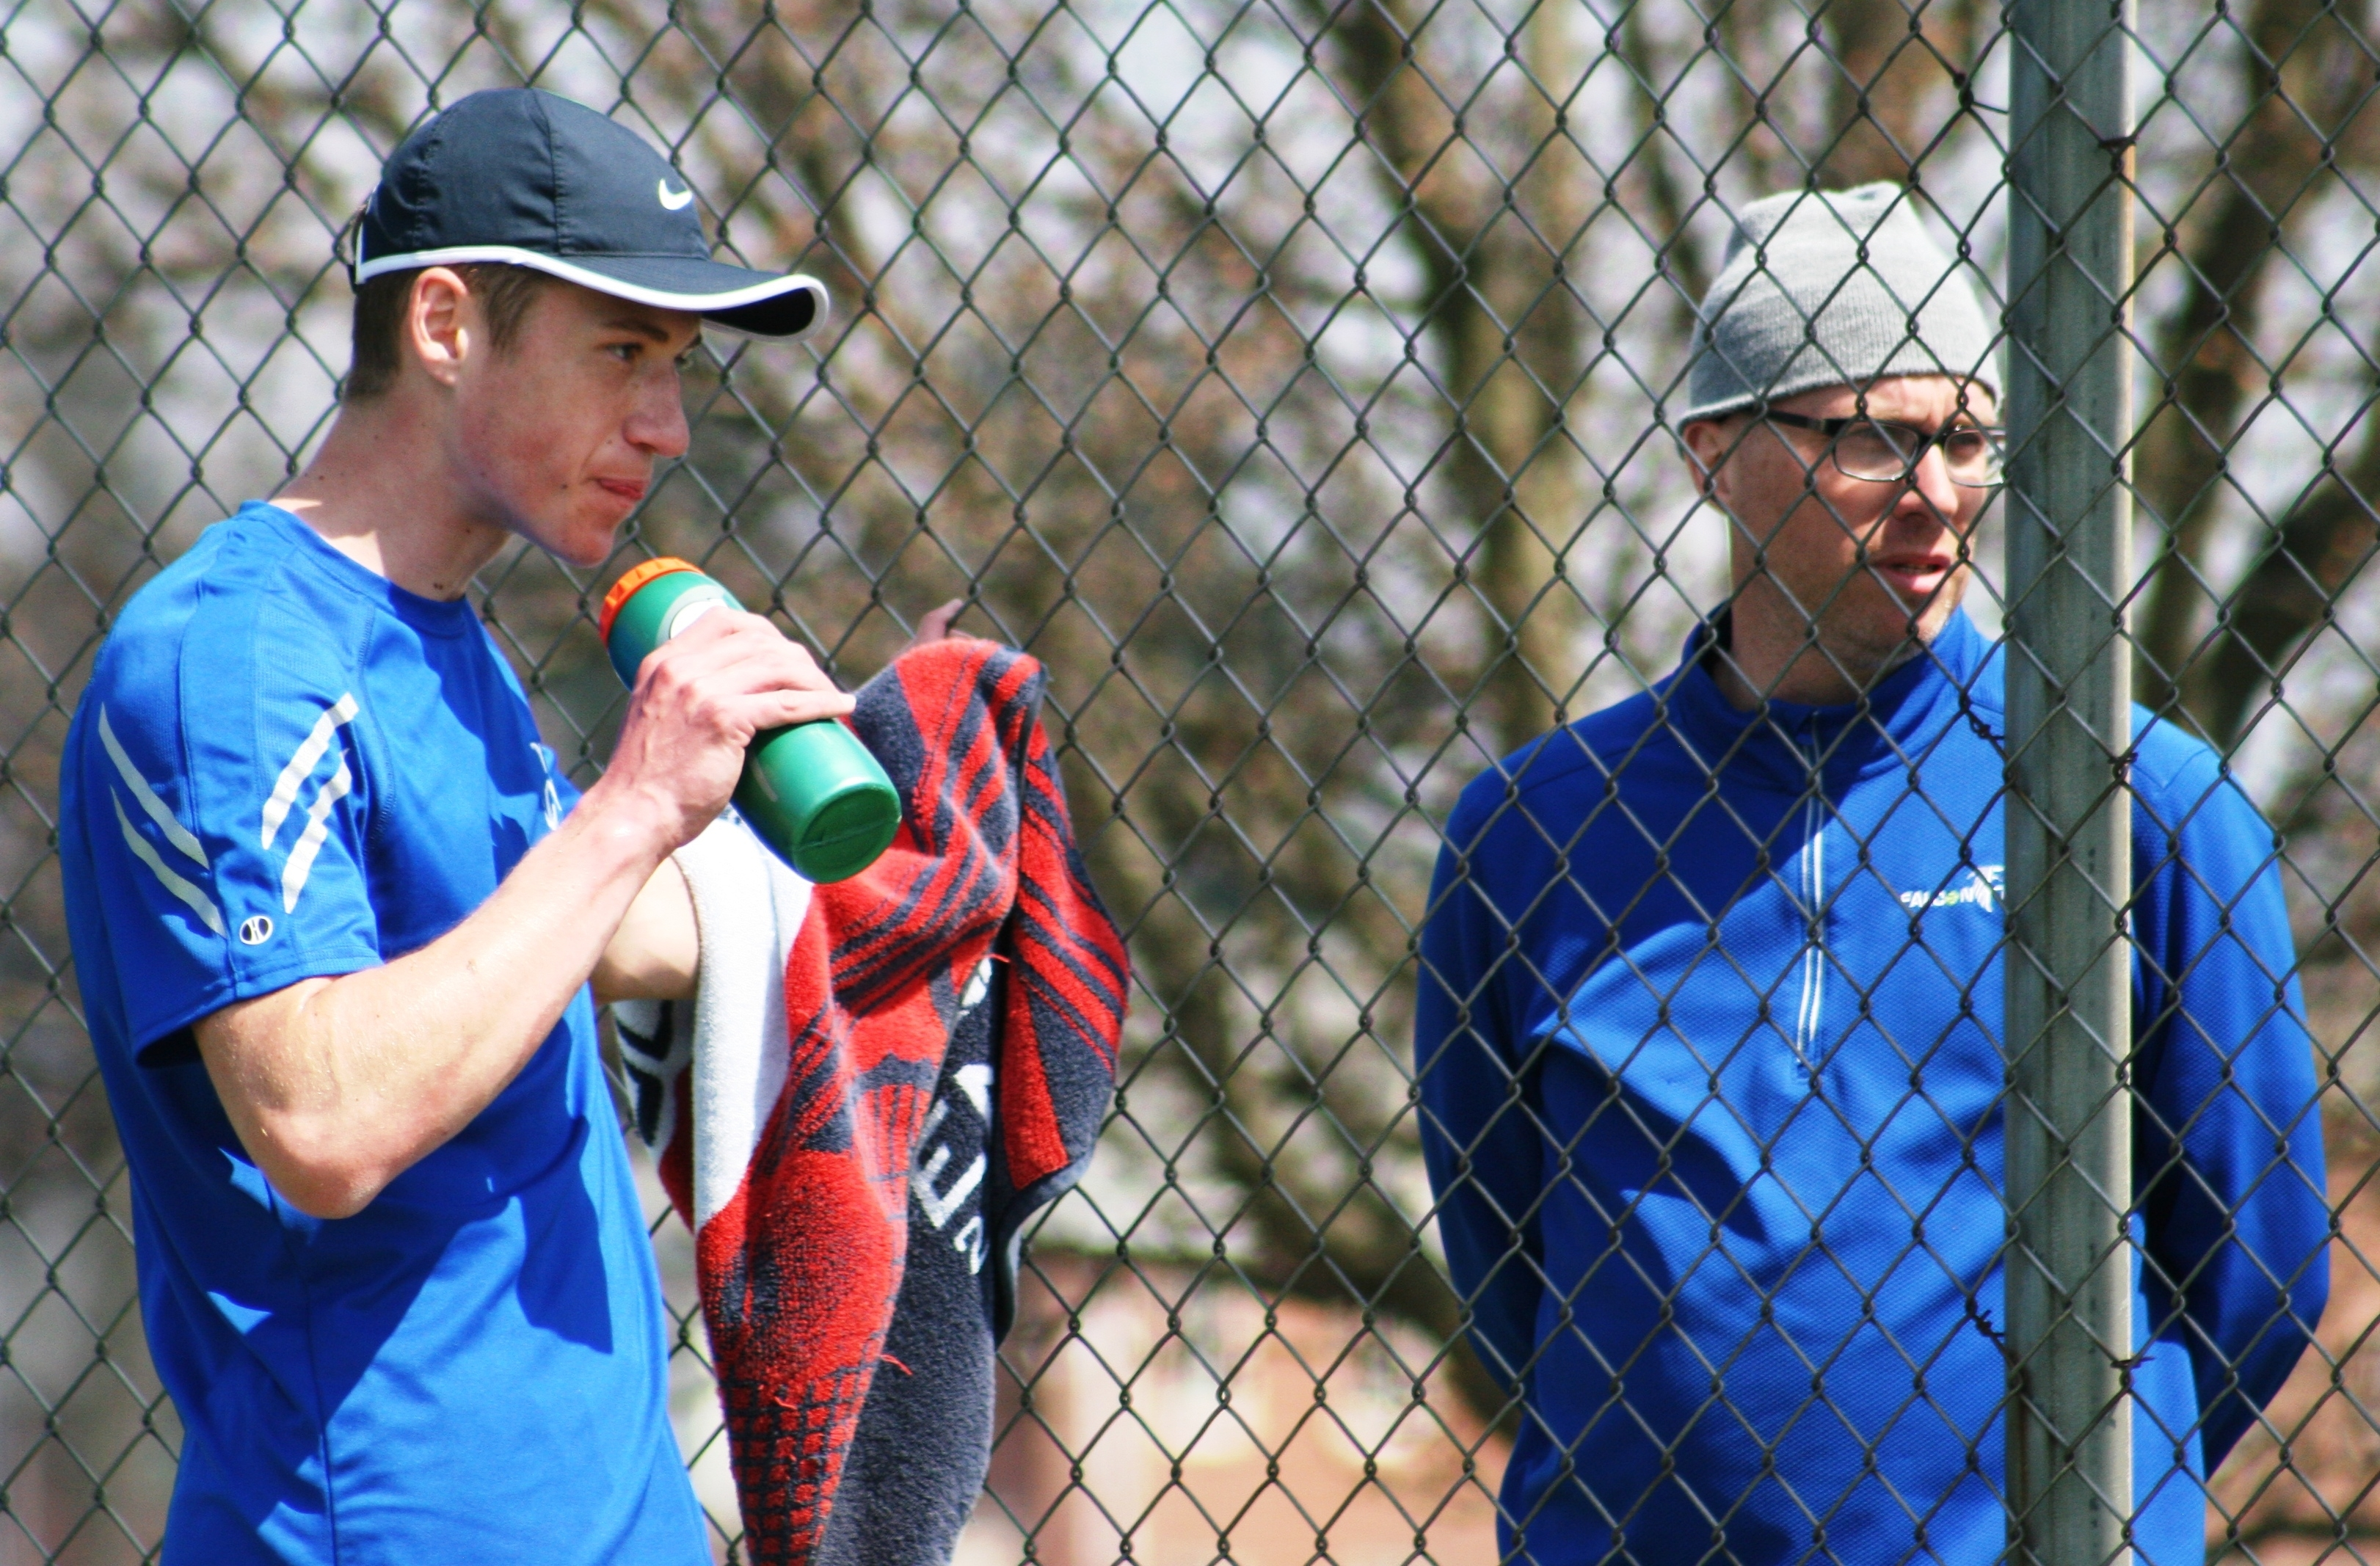 Lebanon County boys' tennis tournament 038